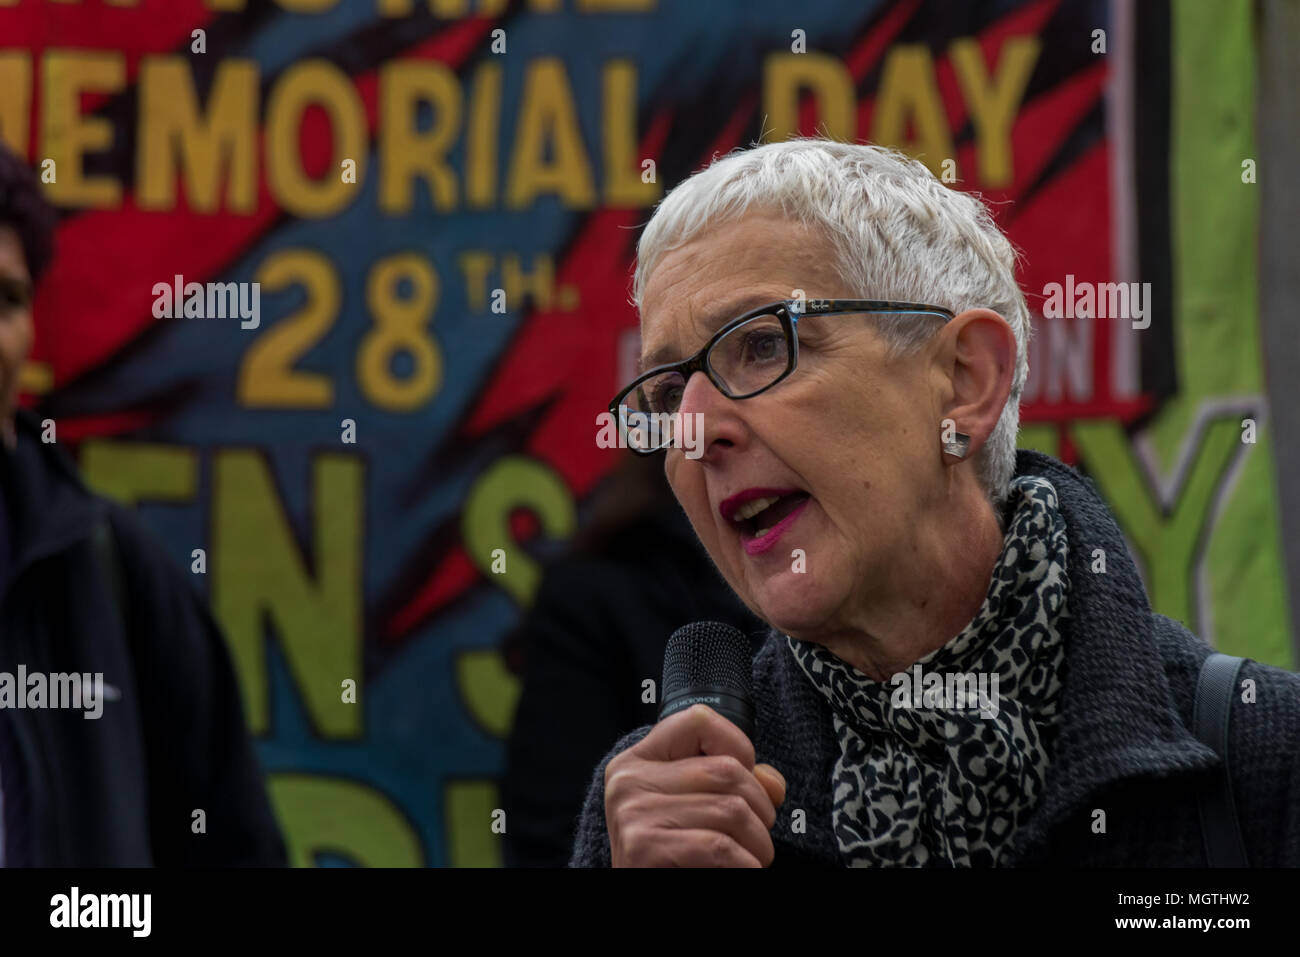 London, UK. 28 April 2018.  Gail Cartmel, Assistant General Secretary Unite, speaks at the International Workers' Memorial Day rally at the statue of a building worker on Tower Hill remembering all those killed at work, around 500 in the last ten years, mainly in the construction industry, as well as those injured, disabled and made unwell, almost all in preventable incidents. Credit: ZUMA Press, Inc./Alamy Live News - Stock Image